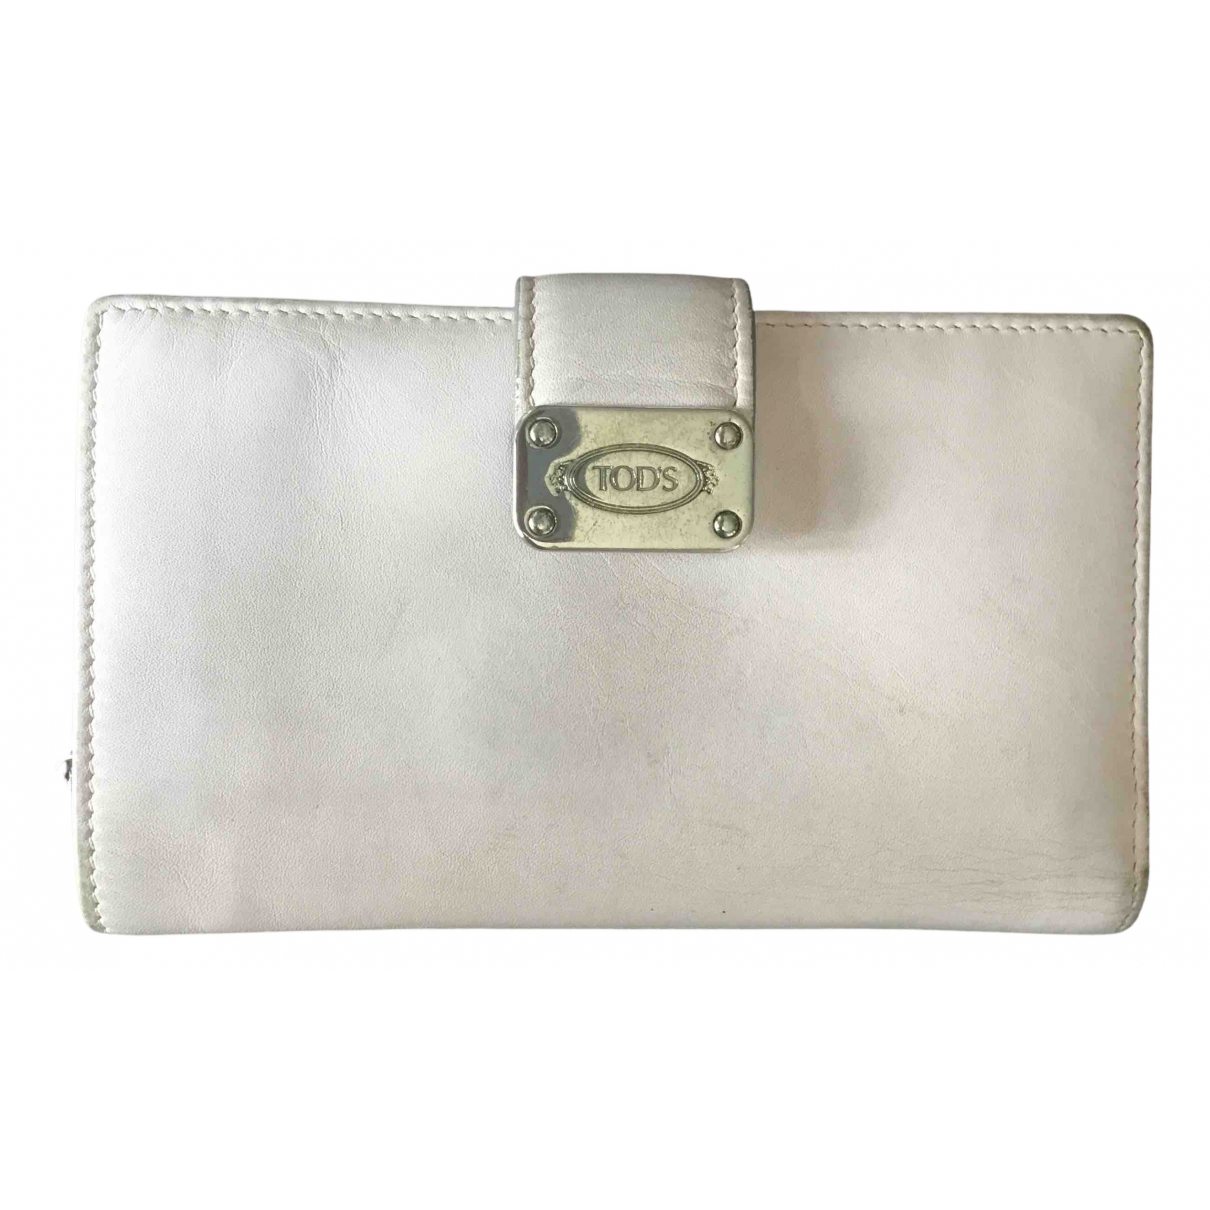 Tod's N Pink Leather wallet for Women N